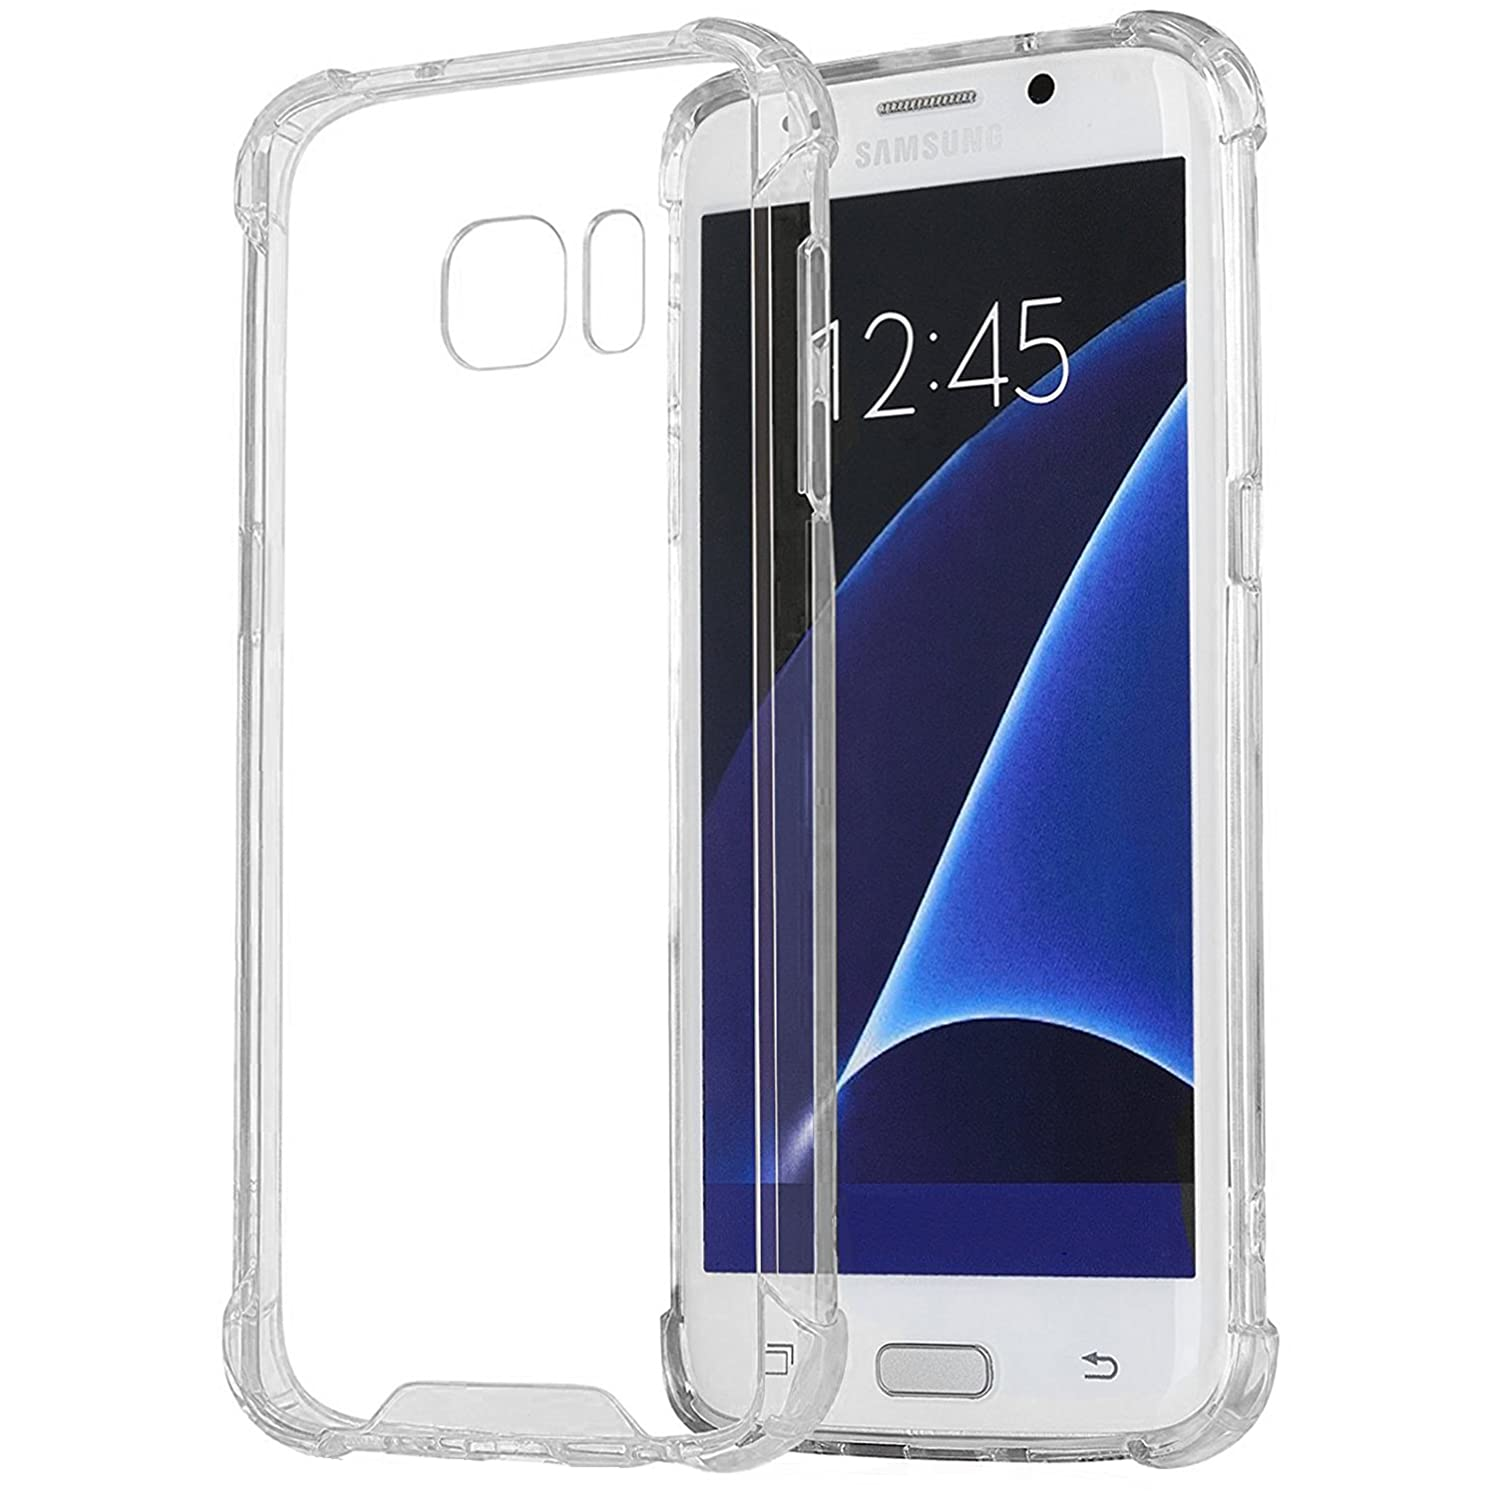 Galaxy S7 Clear Case, Hybrid Bumper Case with TPU/PC and Crystal Ultra Clear Back Hard Panel Cover Scratch Resistant for Samsung Galaxy S7 - Clear